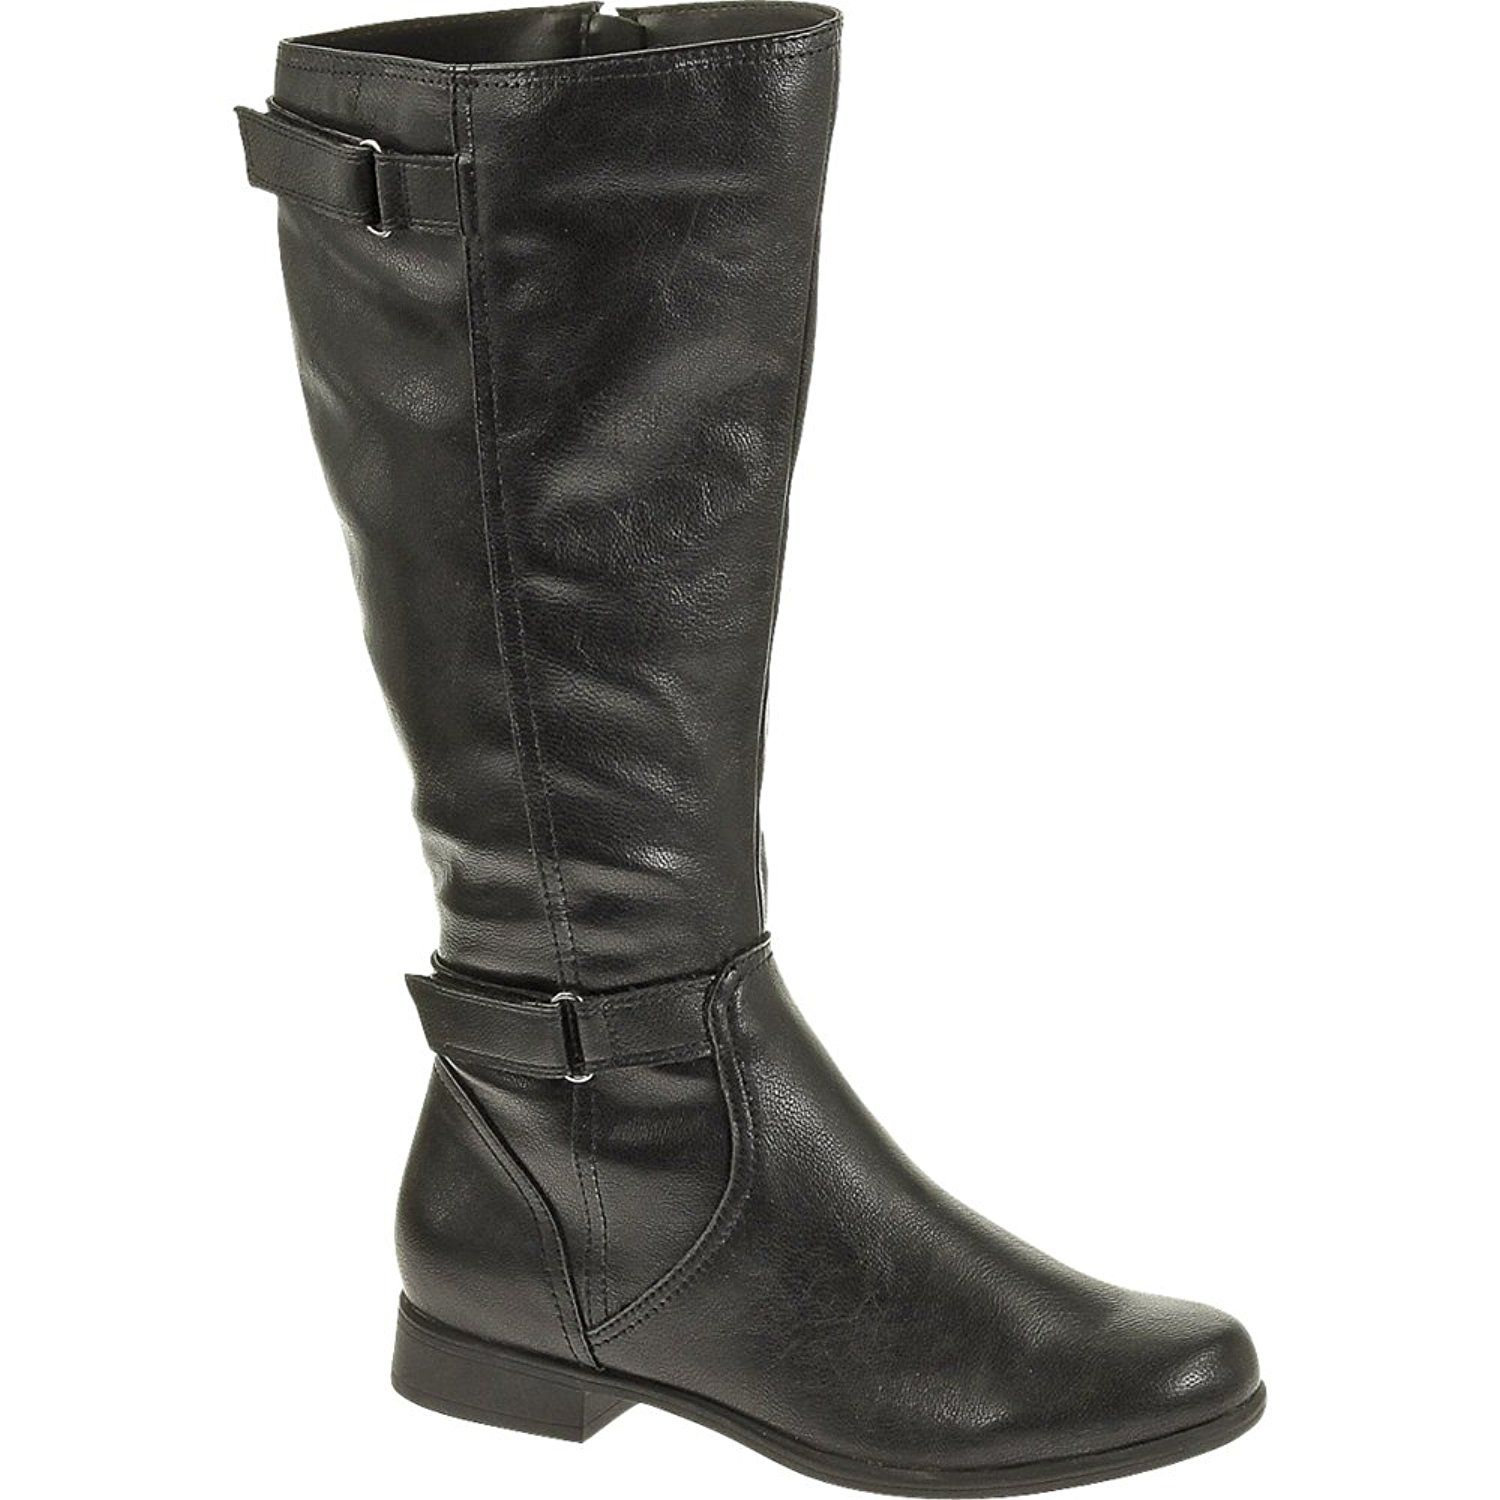 Hush Puppies Women S Motive 16 Boot Black Polyurethane Us 8 M Wow I Love This Check It Out Now Women S Over The Knee Boots Womens Boots Boots